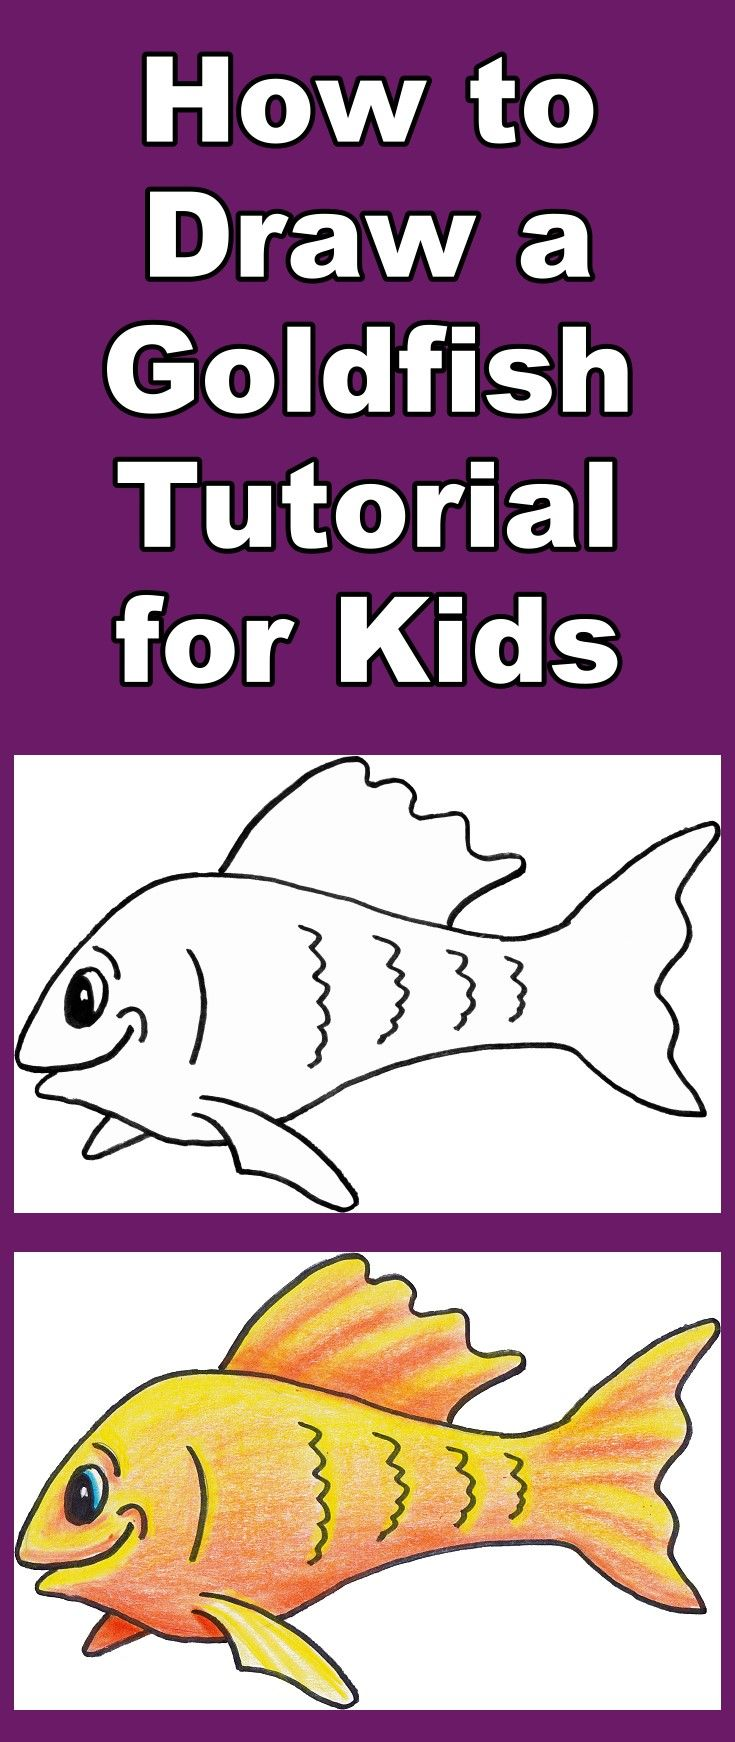 Follow the video as you learn how to draw and then color this friendly cartoon goldfish. Includes a free downloadable coloring page.